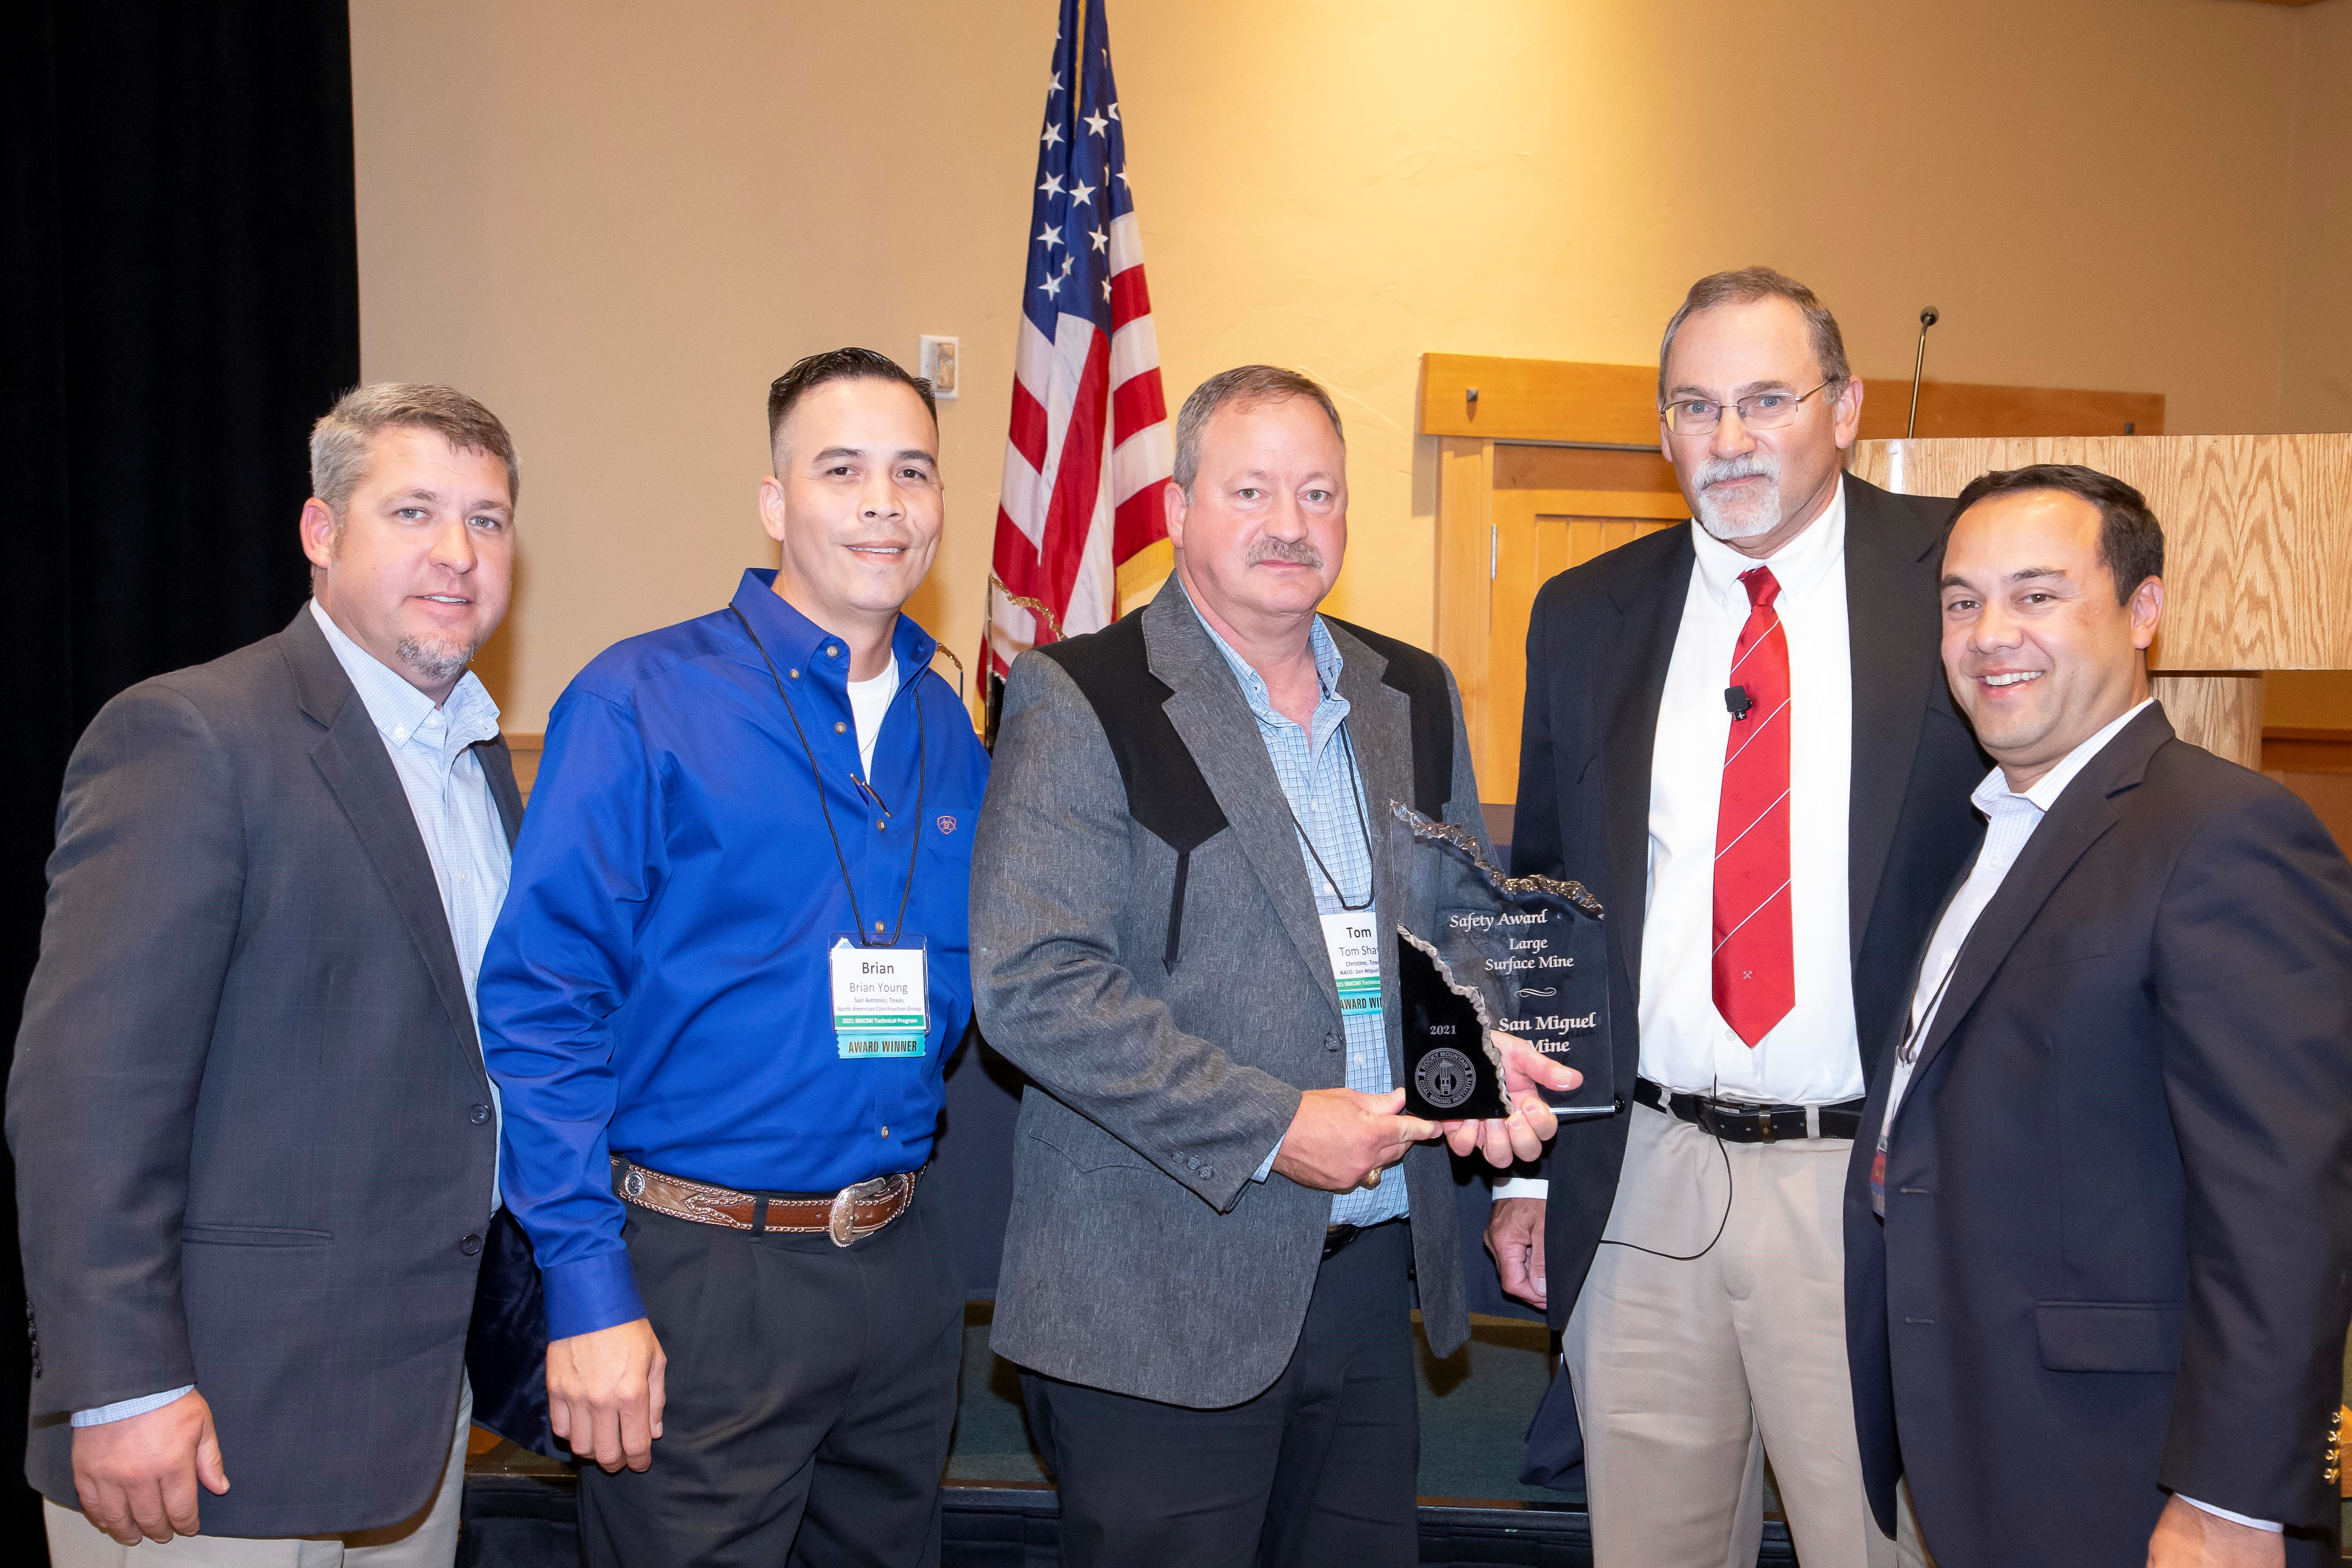 From left to right: Dave Burris, SMEC Fuels Manager; Brian Young, North American Construction Group (NACG) Safety Manager; Tom Shaw, NACG Mine Manger; Wendell Koontz, RMCMI Board of Directors and head of Safety Committee; and Frank Pagura, RMCMI President Elect.